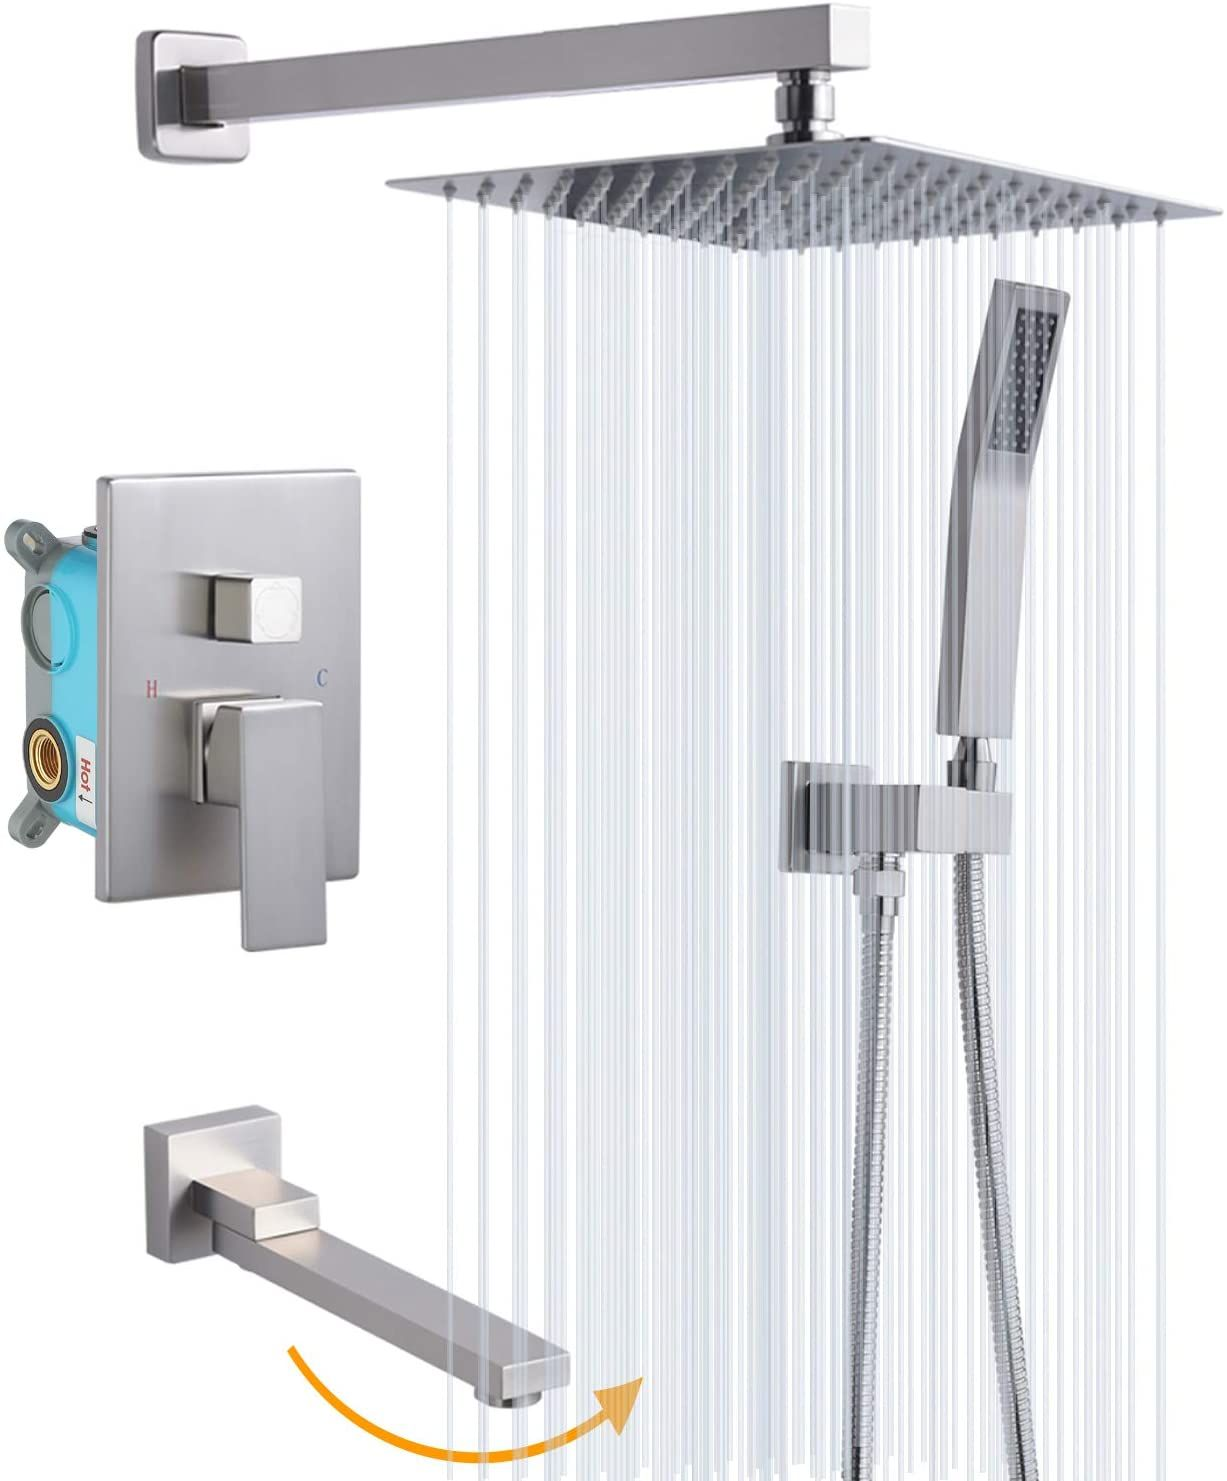 Rugus Shower System Luxury Rain Mixer Shower Tub Spout Combo Set Wall Mounted Rainfall S Amazon Affiliate L Shower Systems Rainfall Shower Head Shower Faucet